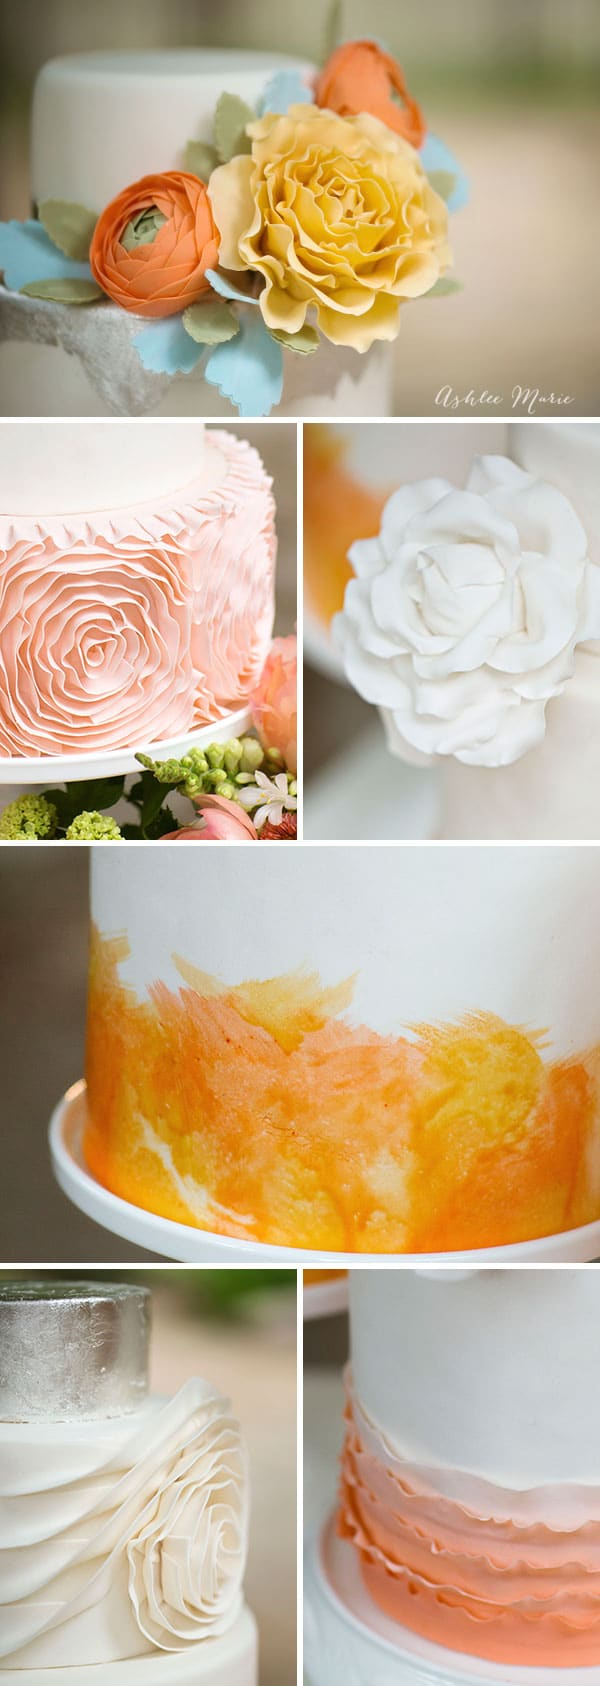 gumpaste flowers, fondant rosettes, hand painted watercoloring, ruffles and more all add the the beauty of this trio of wedding cakes